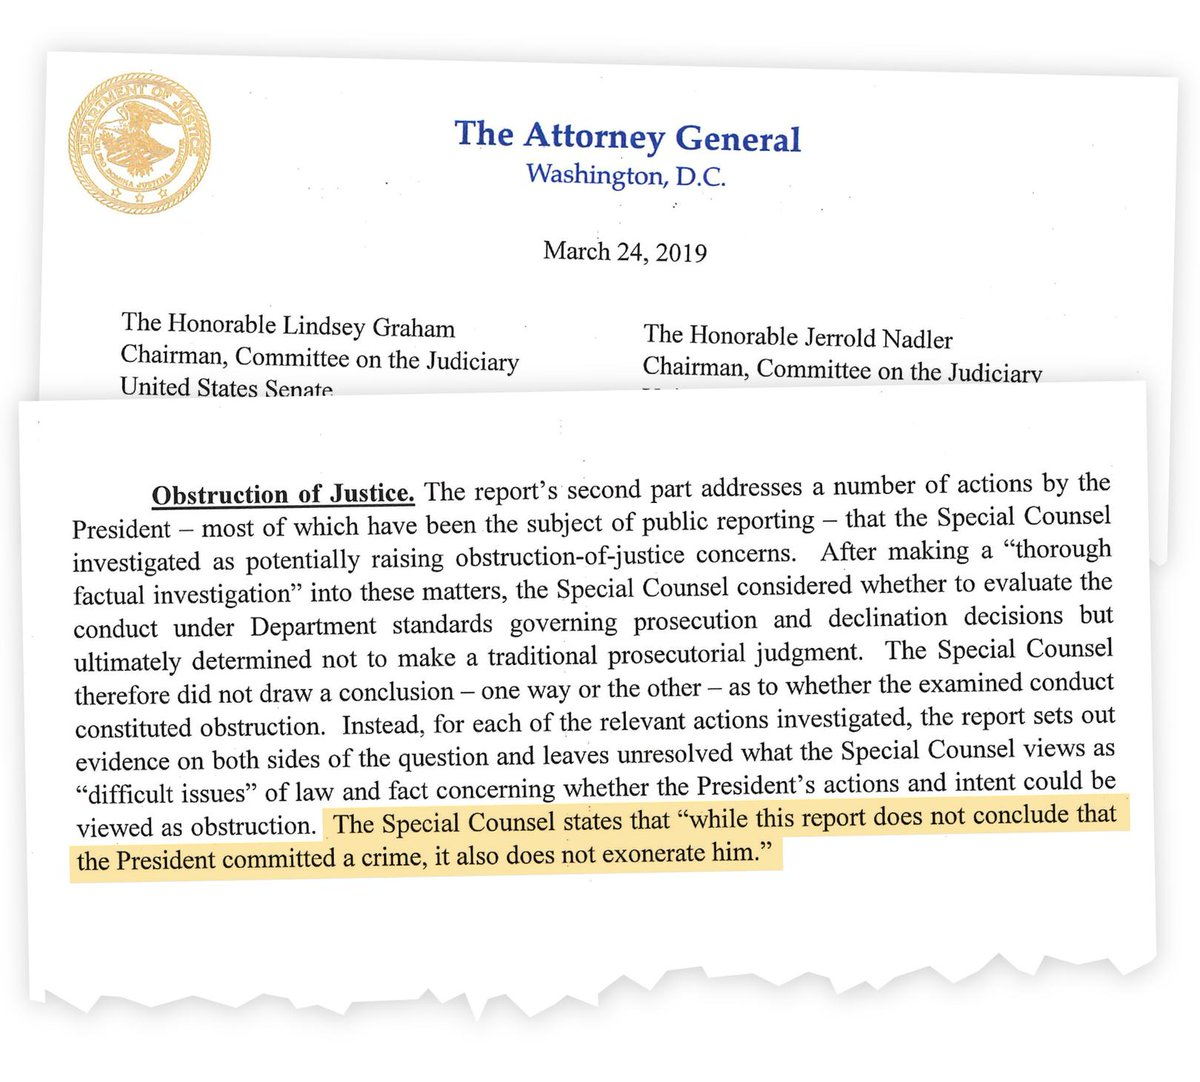 Read the attorney general's summary of Robert Mueller's investigation into Russian interference in the 2016 presidential election https://nyti.ms/2Fwujdv